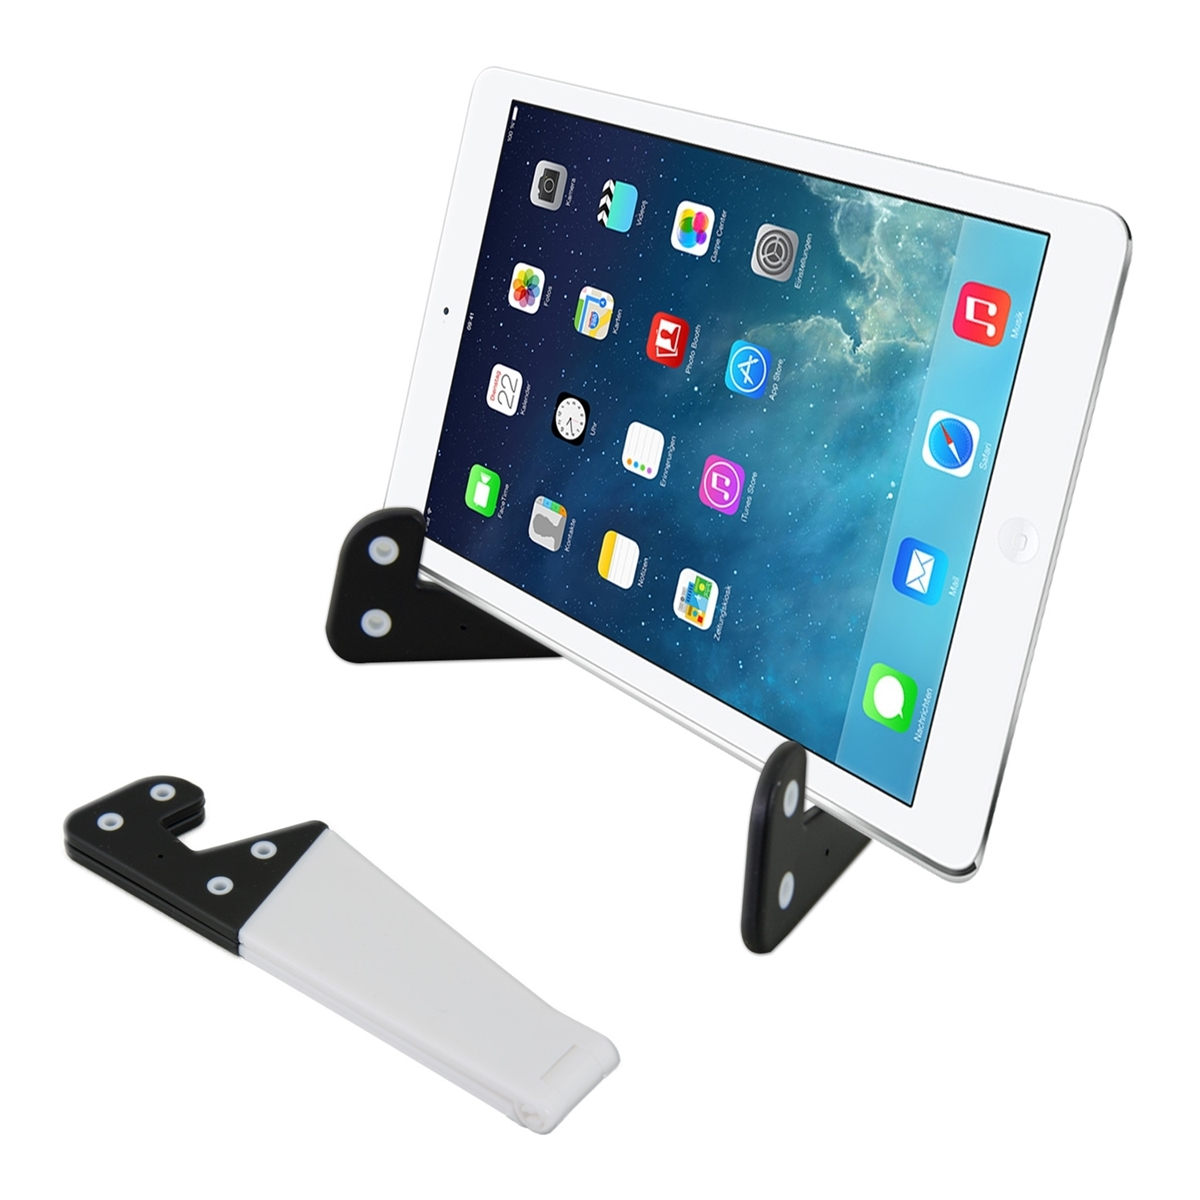 kwmobile support universel pour apple ipad mini 2 retina ipad mini 3 tablette ebay. Black Bedroom Furniture Sets. Home Design Ideas